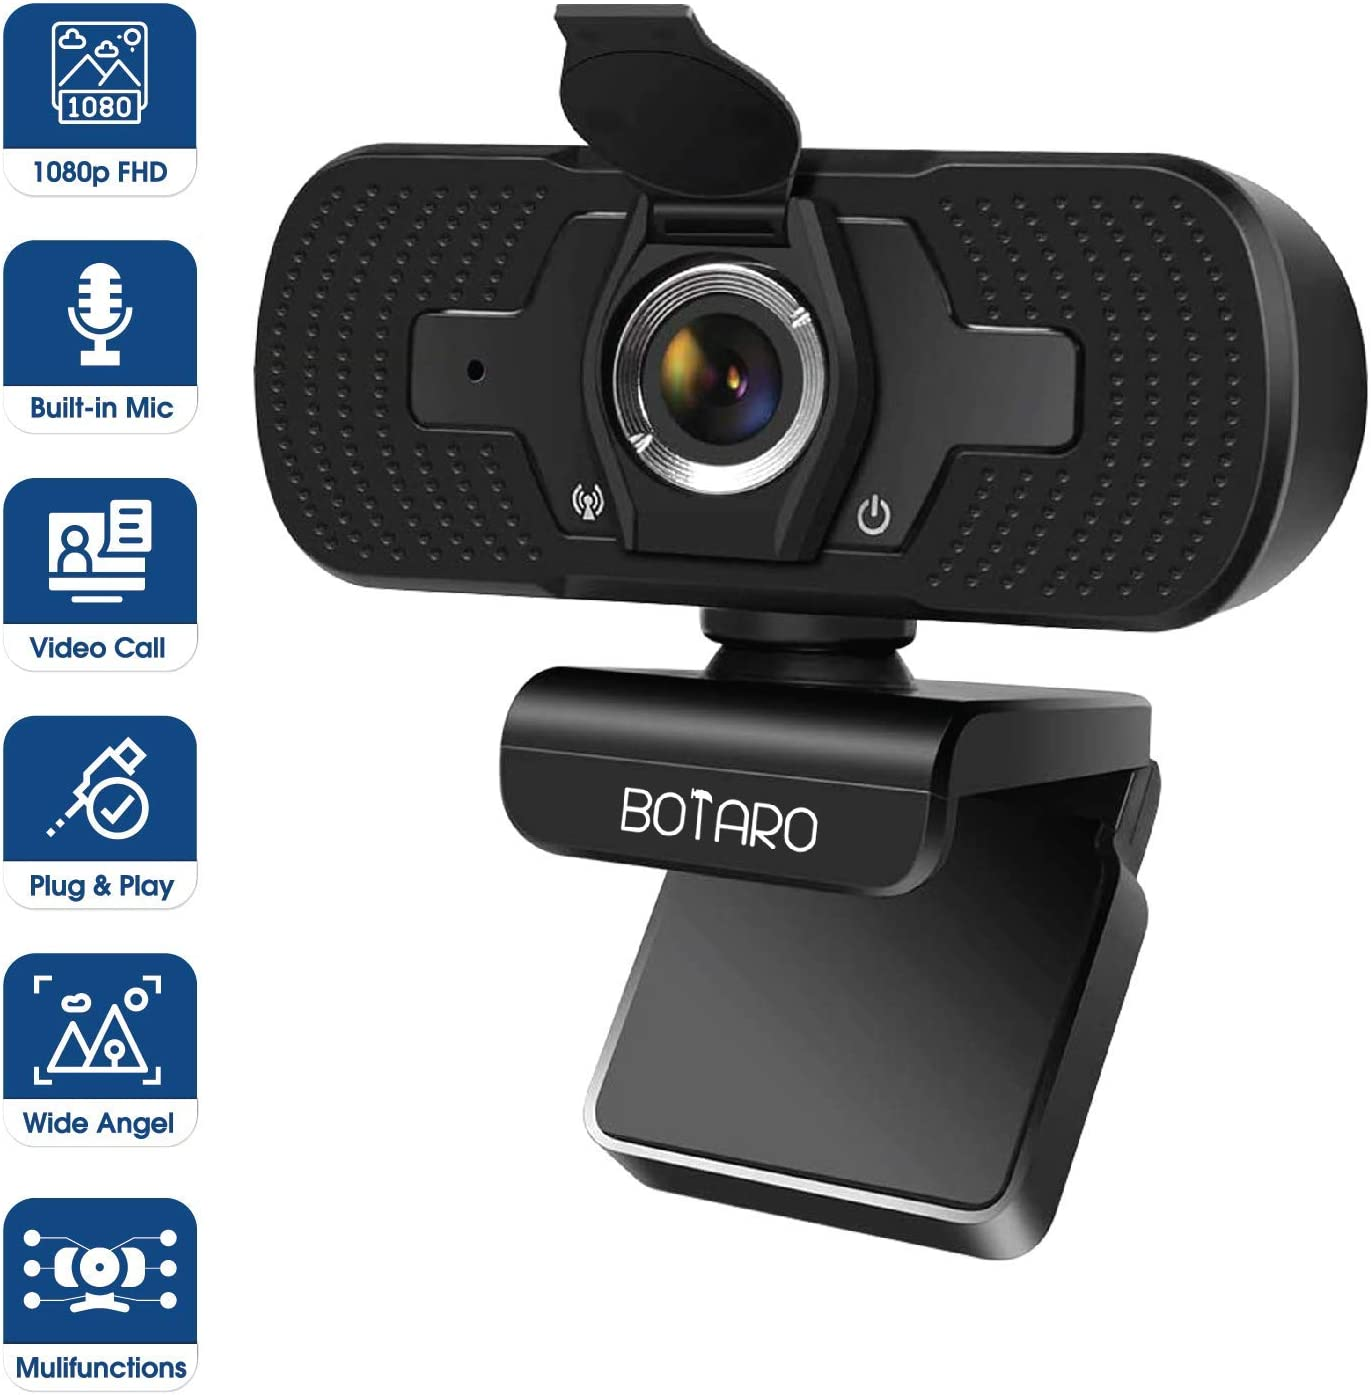 Widely Compatible Webcam for PC TV Privacy Cover Web Camera with 1080P Full HD Quality Laptop Modern Plug and Play Webcam BOTARO 1080P USB Webcam with Microphone